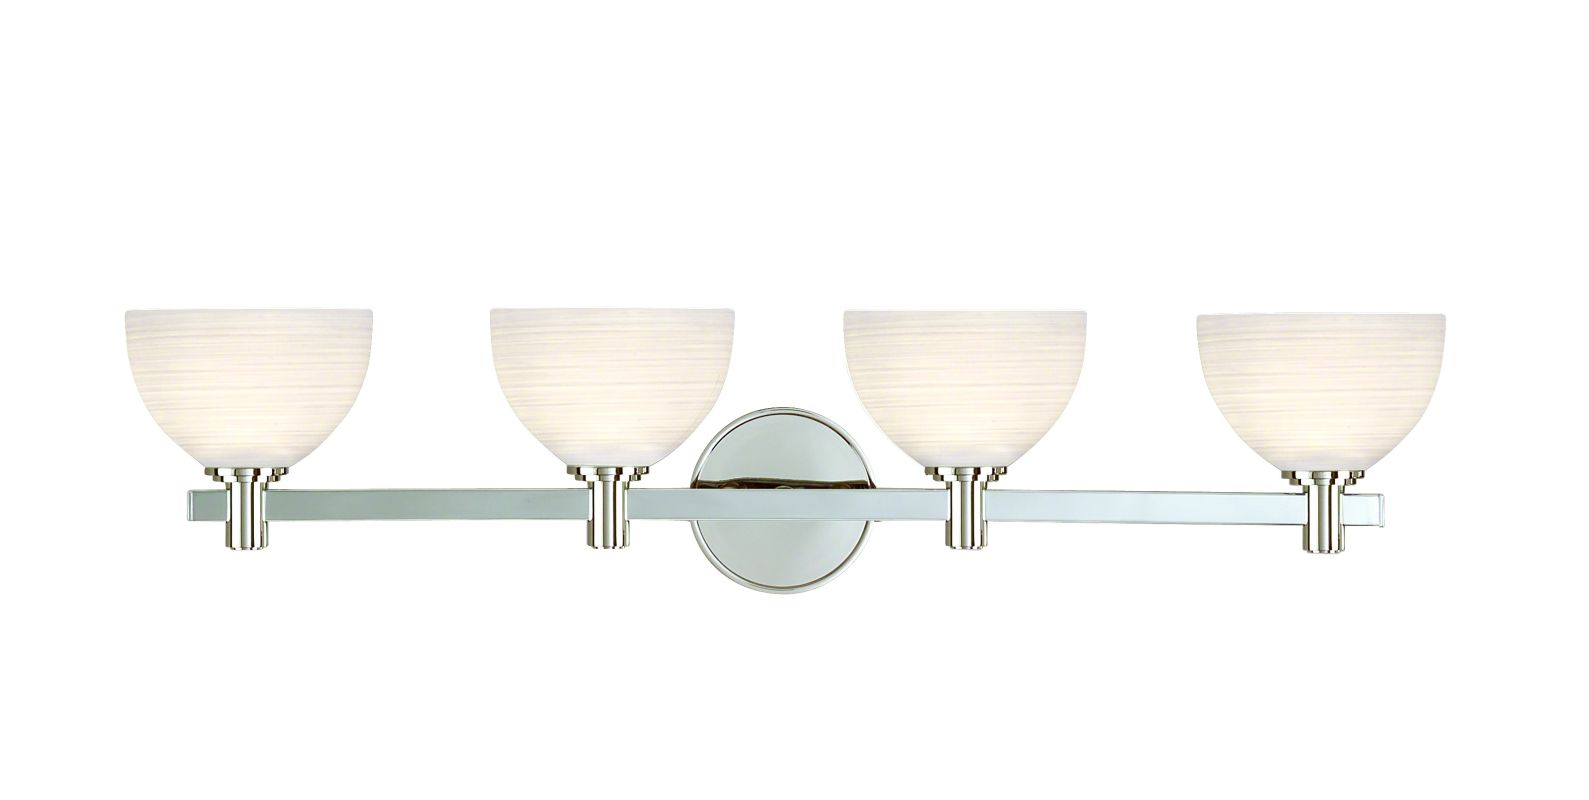 "Hudson Valley Lighting 1404 9.75"" Wide Bathroom Fixture from the"